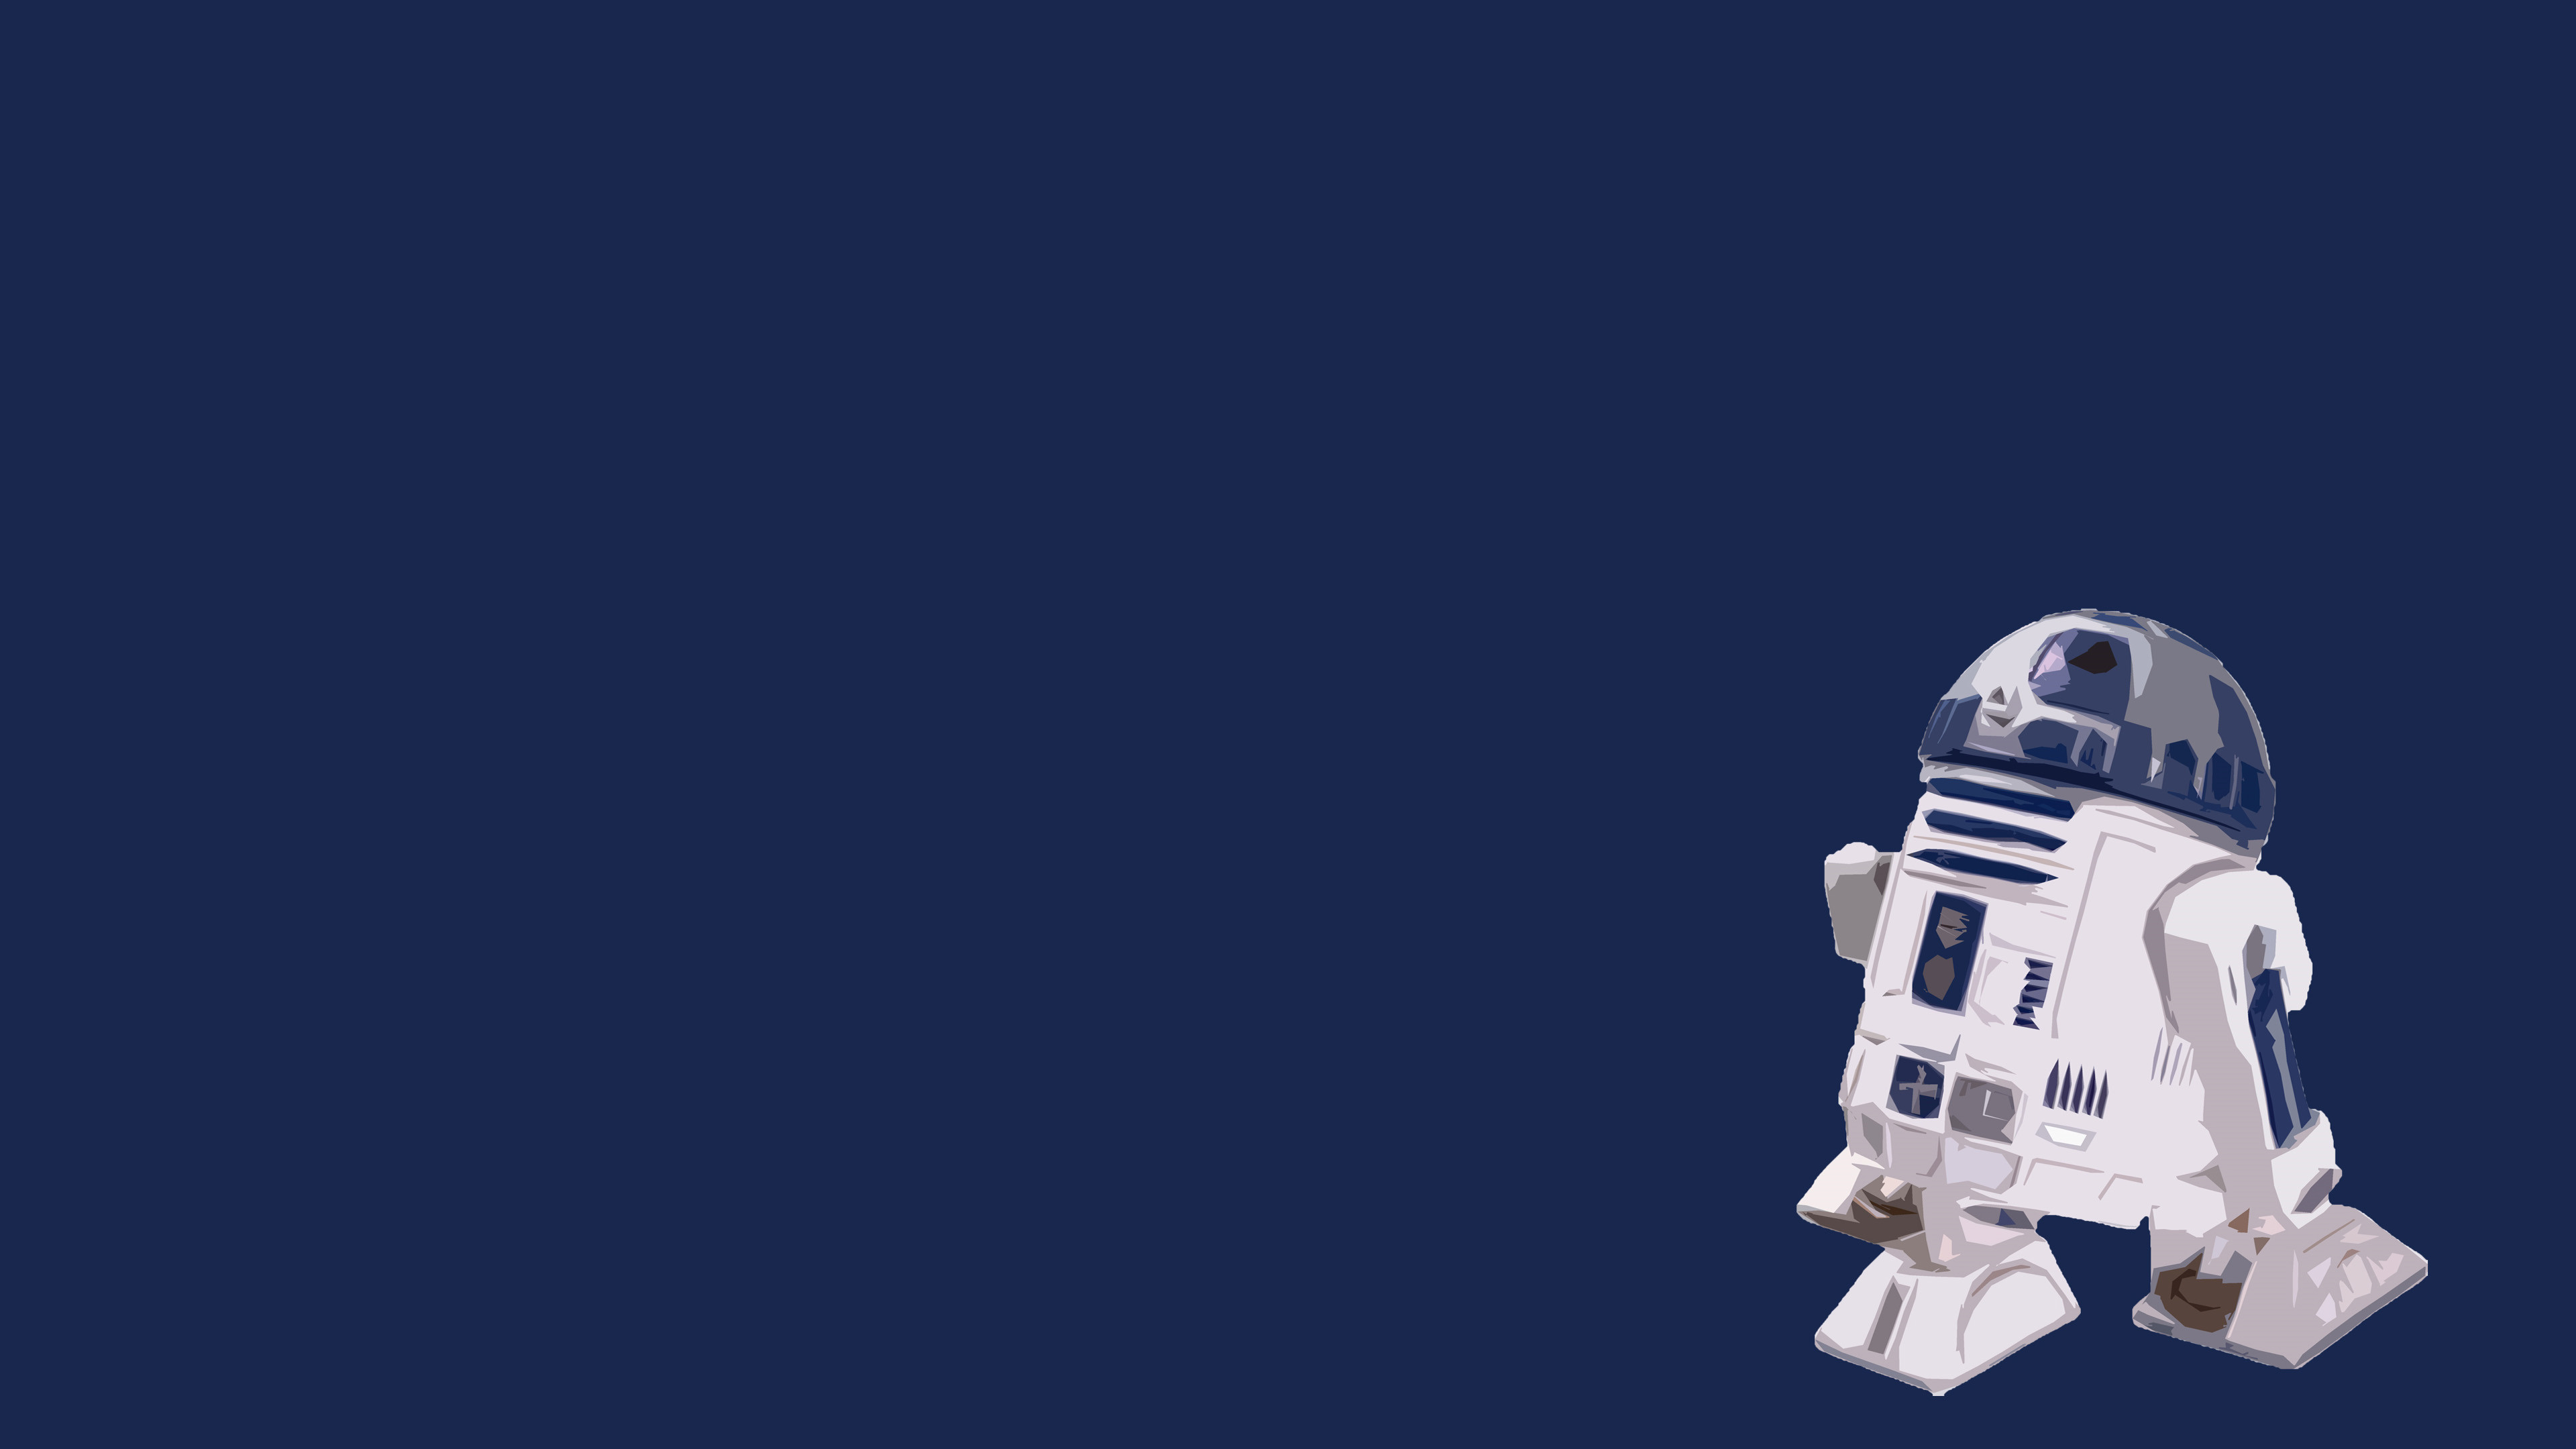 3840x2160 0 R2d2 Wallpaper HD Picturez Minimalist